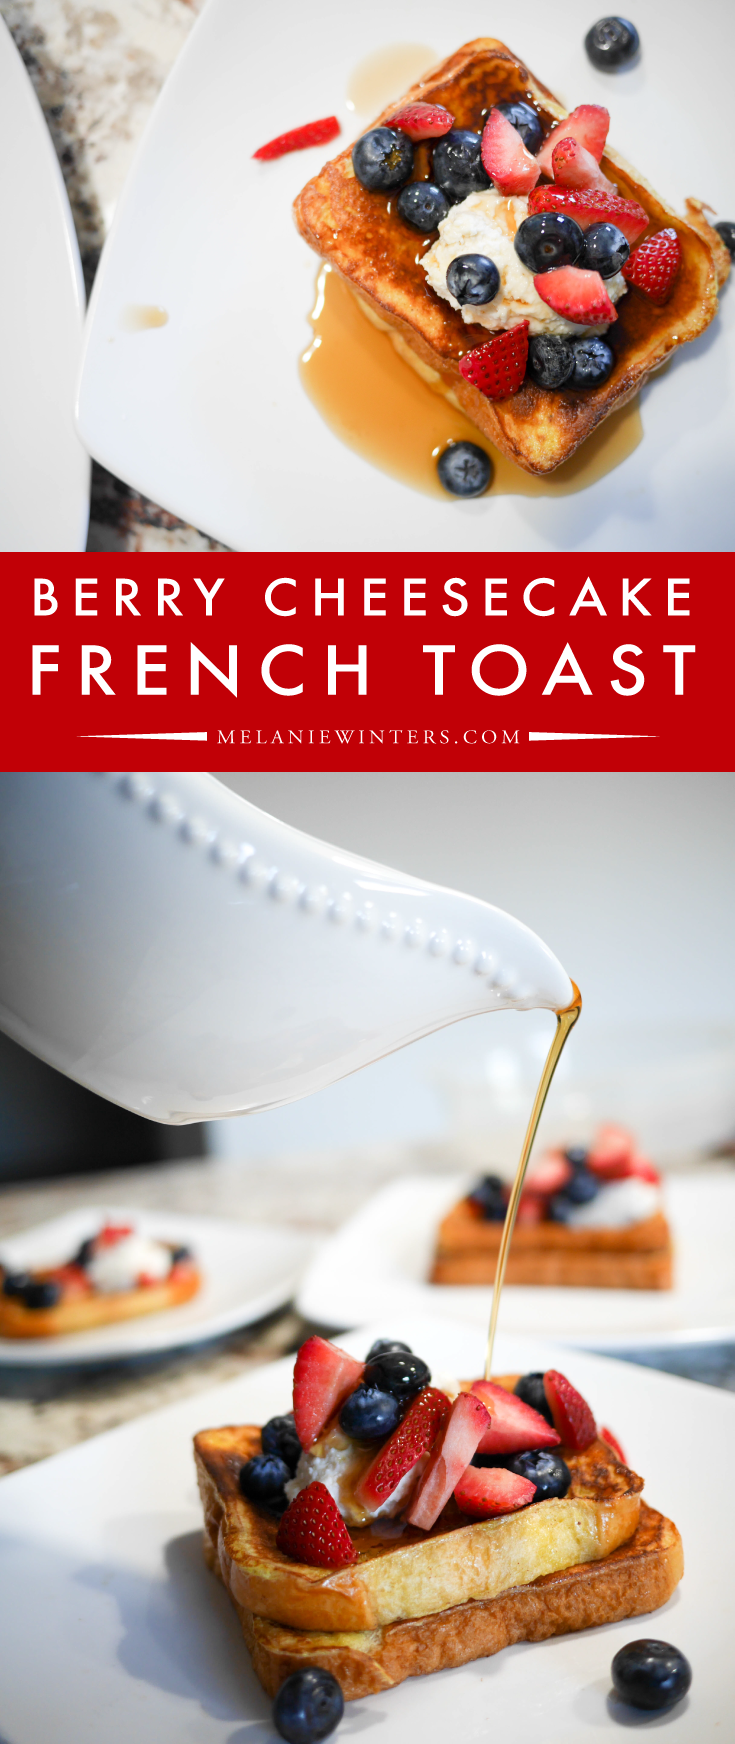 A simple cheesecake topping (or filling) is all it takes to create a next-level breakfast.